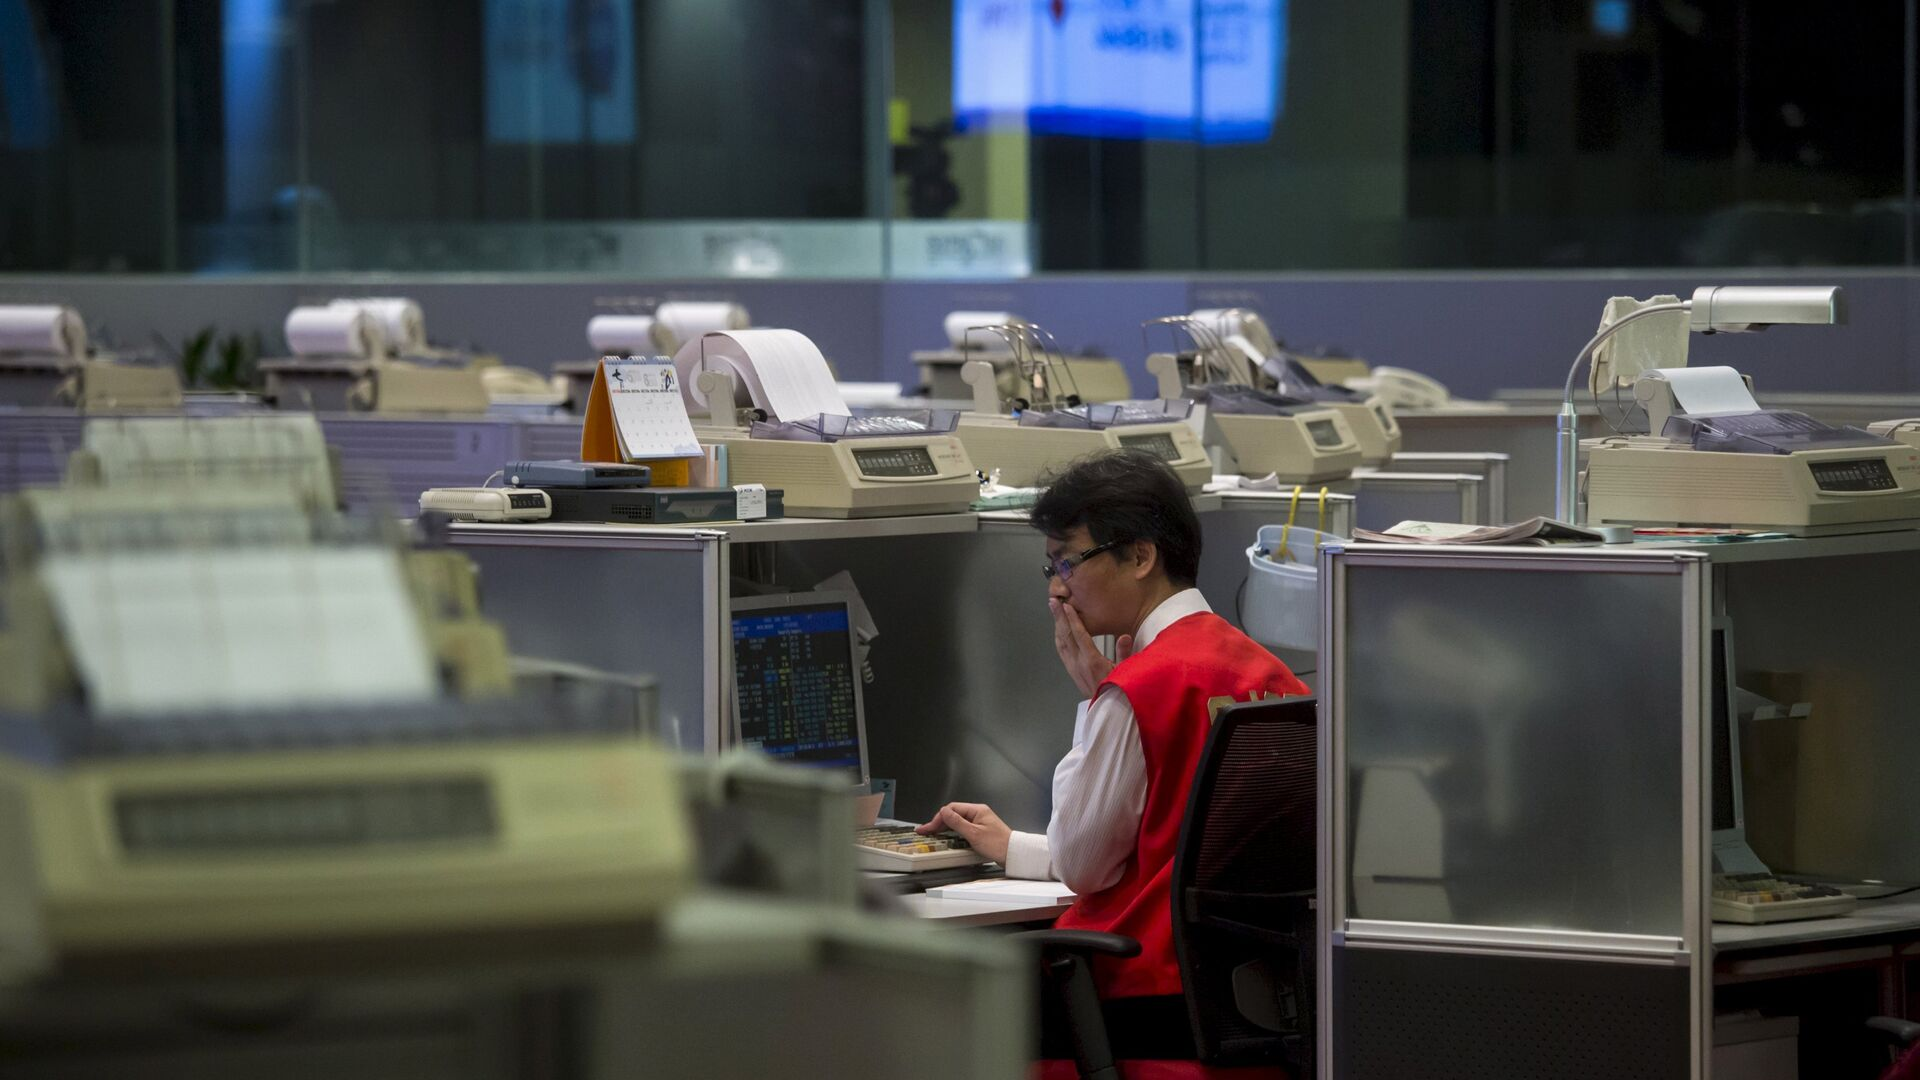 A floor trader reacts inside the trading hall at the Hong Kong Exchanges in Hong Kong, China in this July 8, 2015 file photo. - Sputnik Mundo, 1920, 12.04.2021